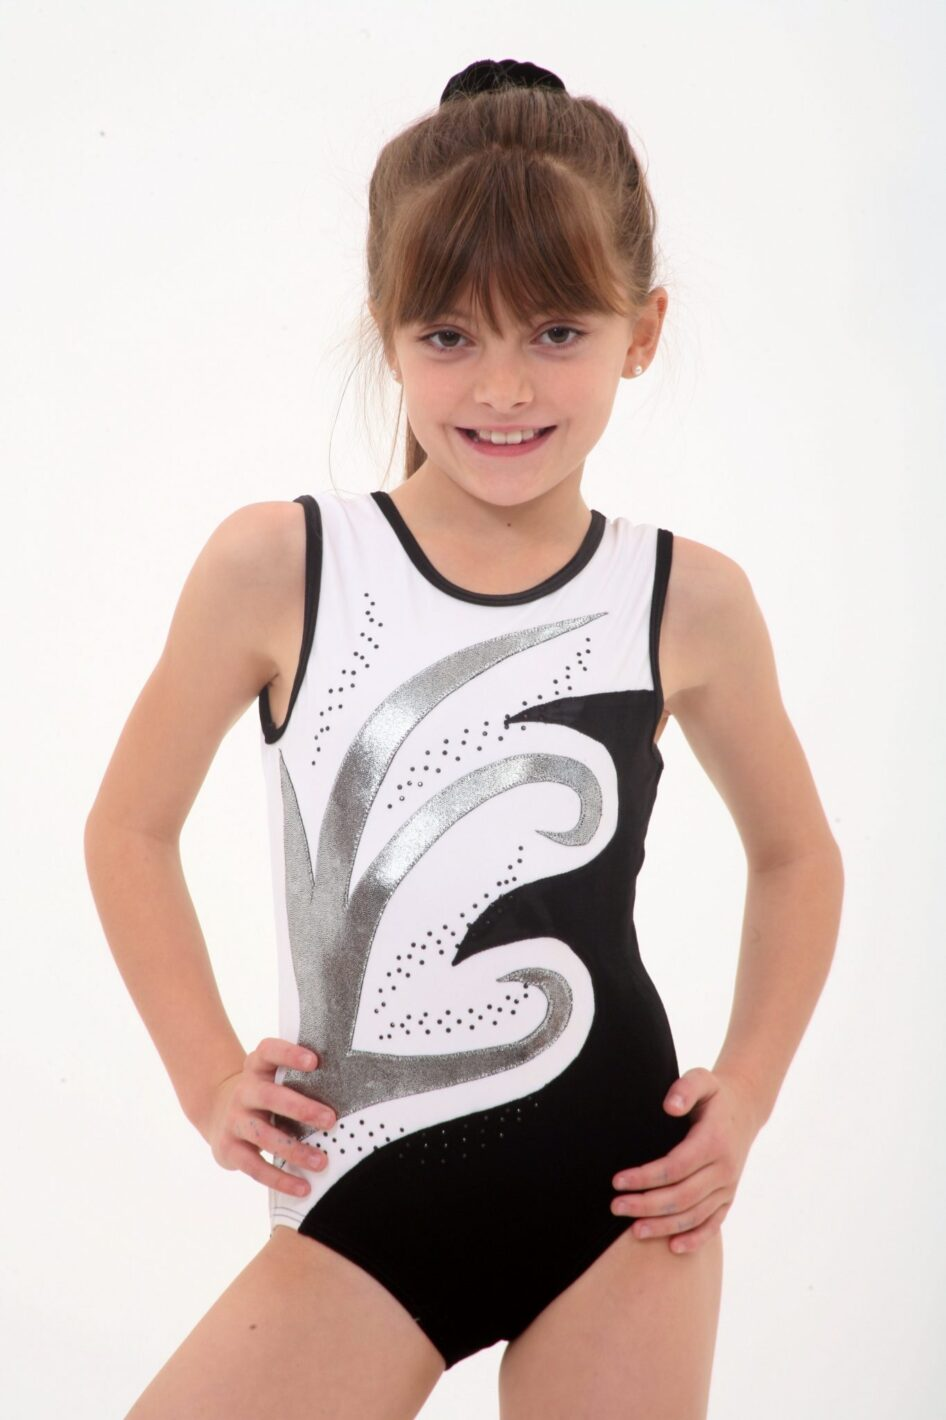 3ef195d87ce7 Peta girls gymnastics leotard - Lilachelene Leotards   Skatewear